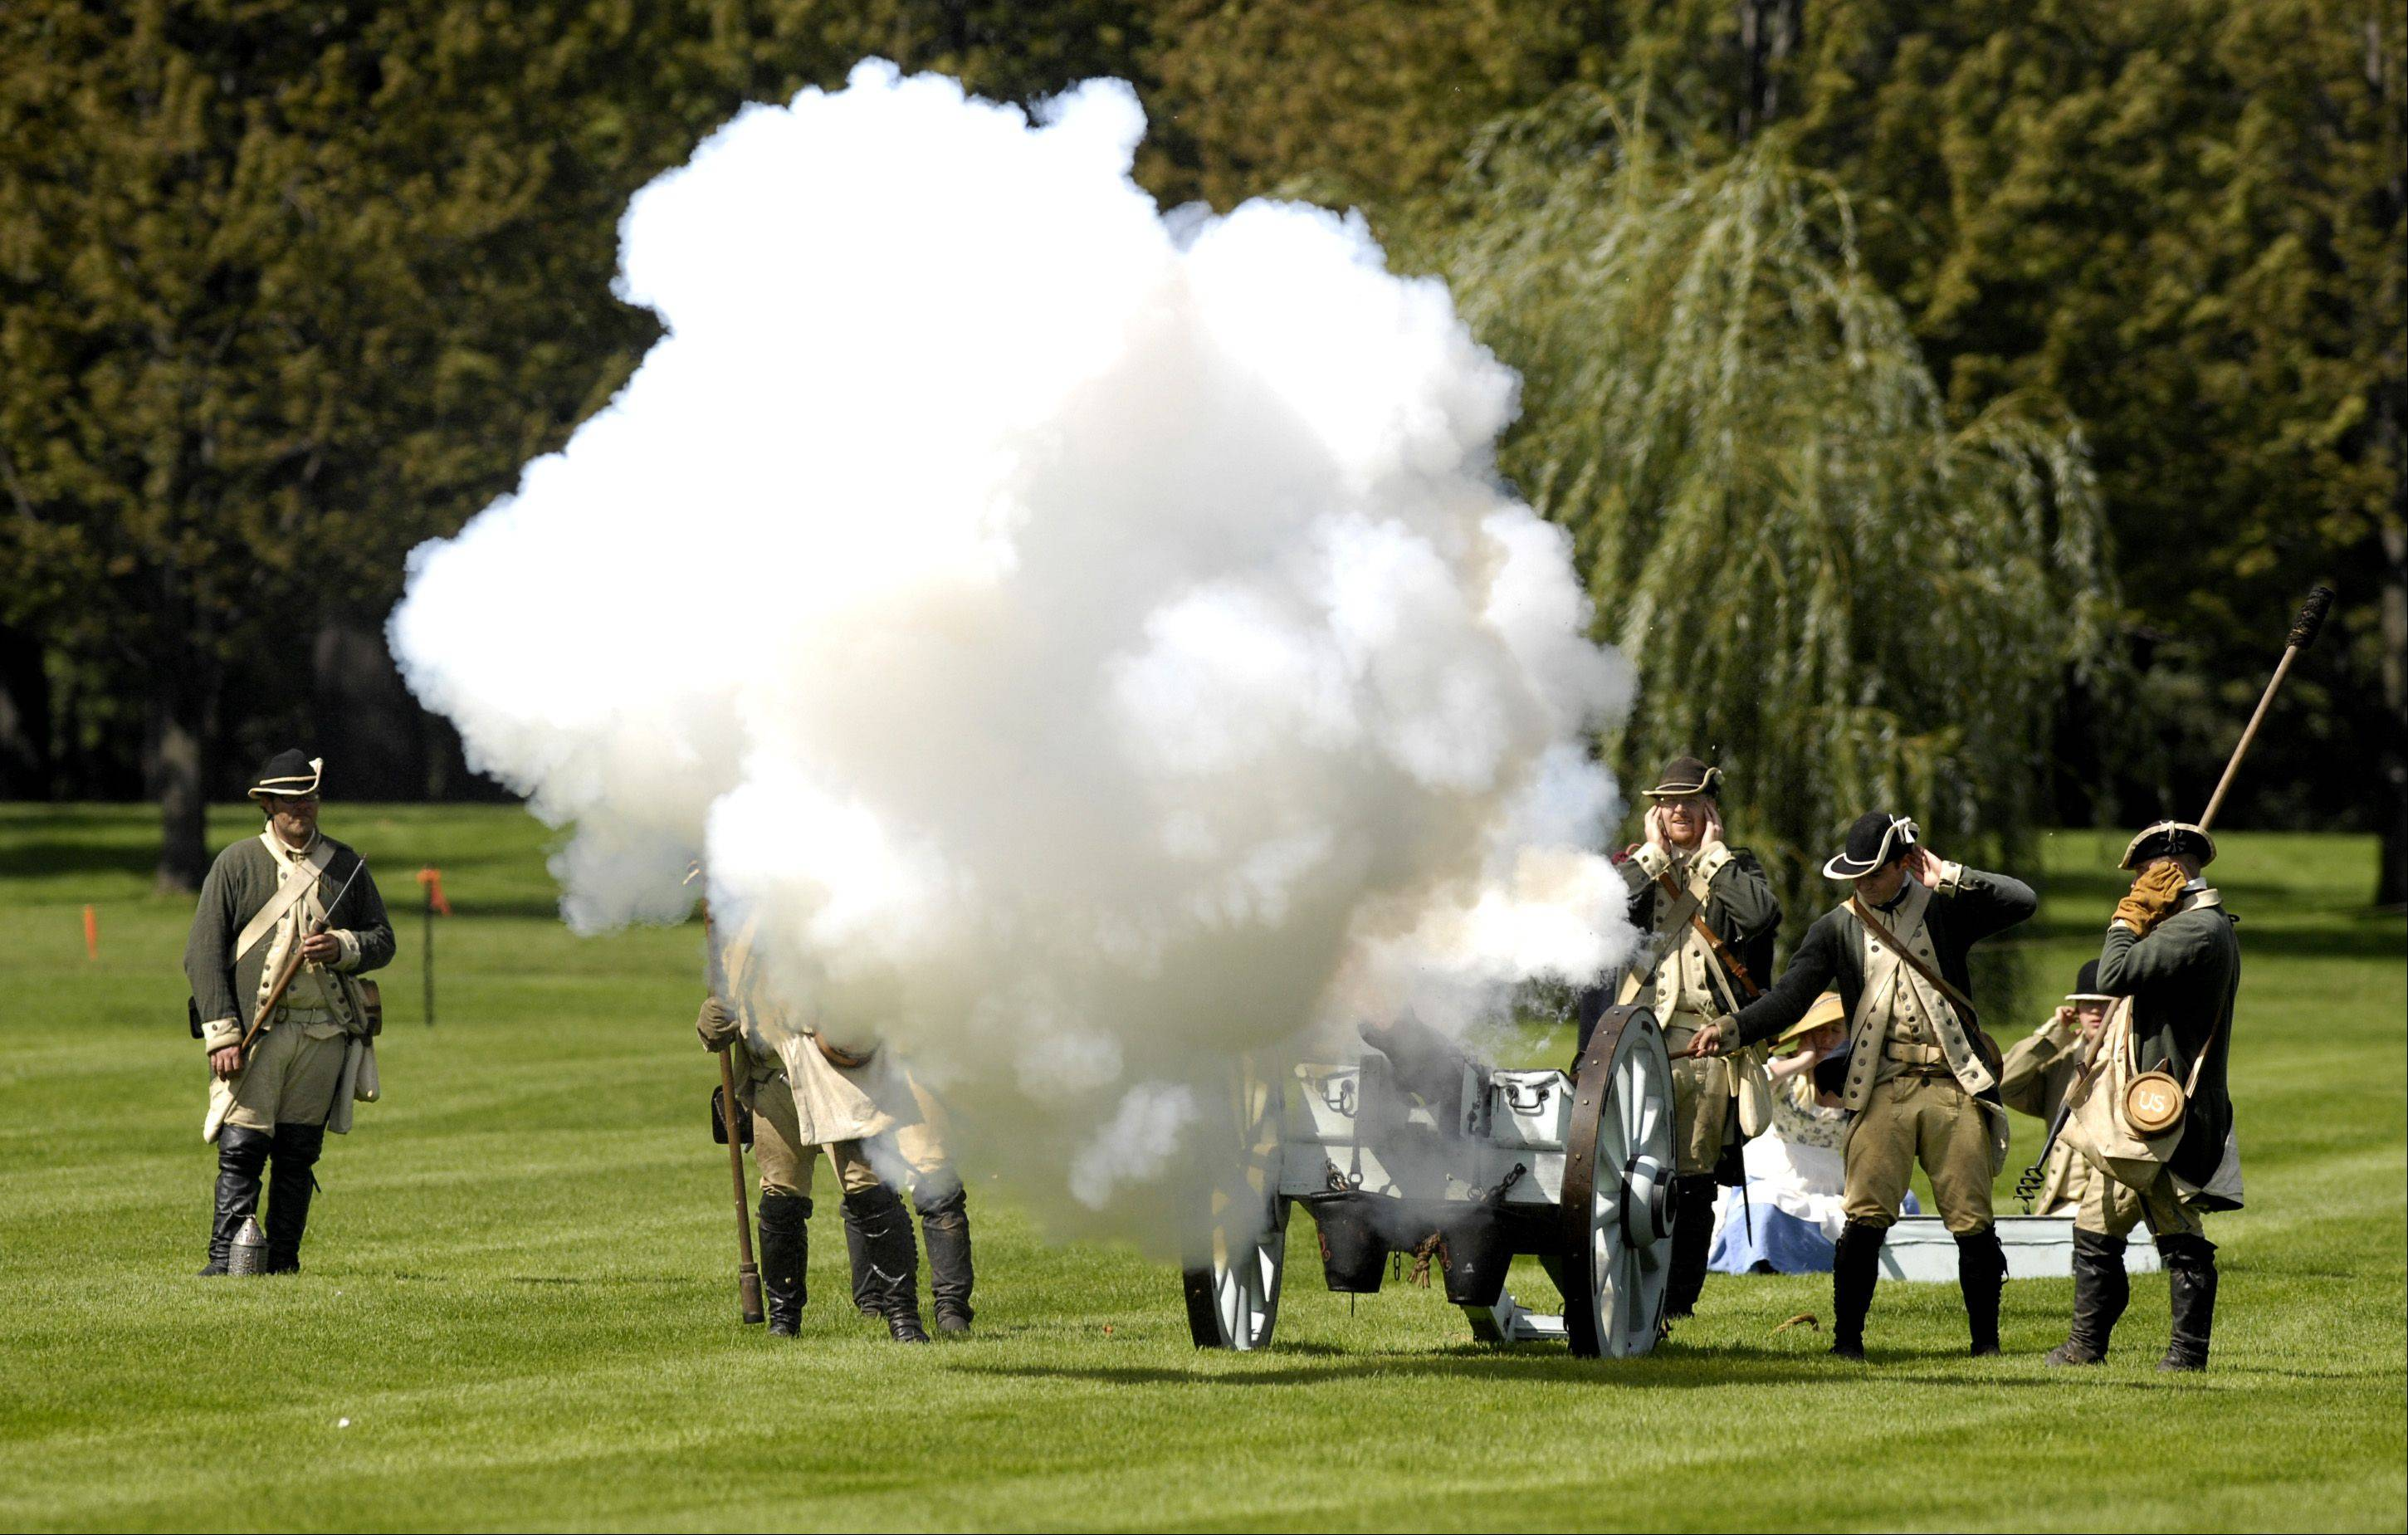 Mark Black/mblack@dailyherald.comThe Continental Army fires a canon during a Revolutionary War battle re-enactment Sunday at Cantigny Park in Wheaton.